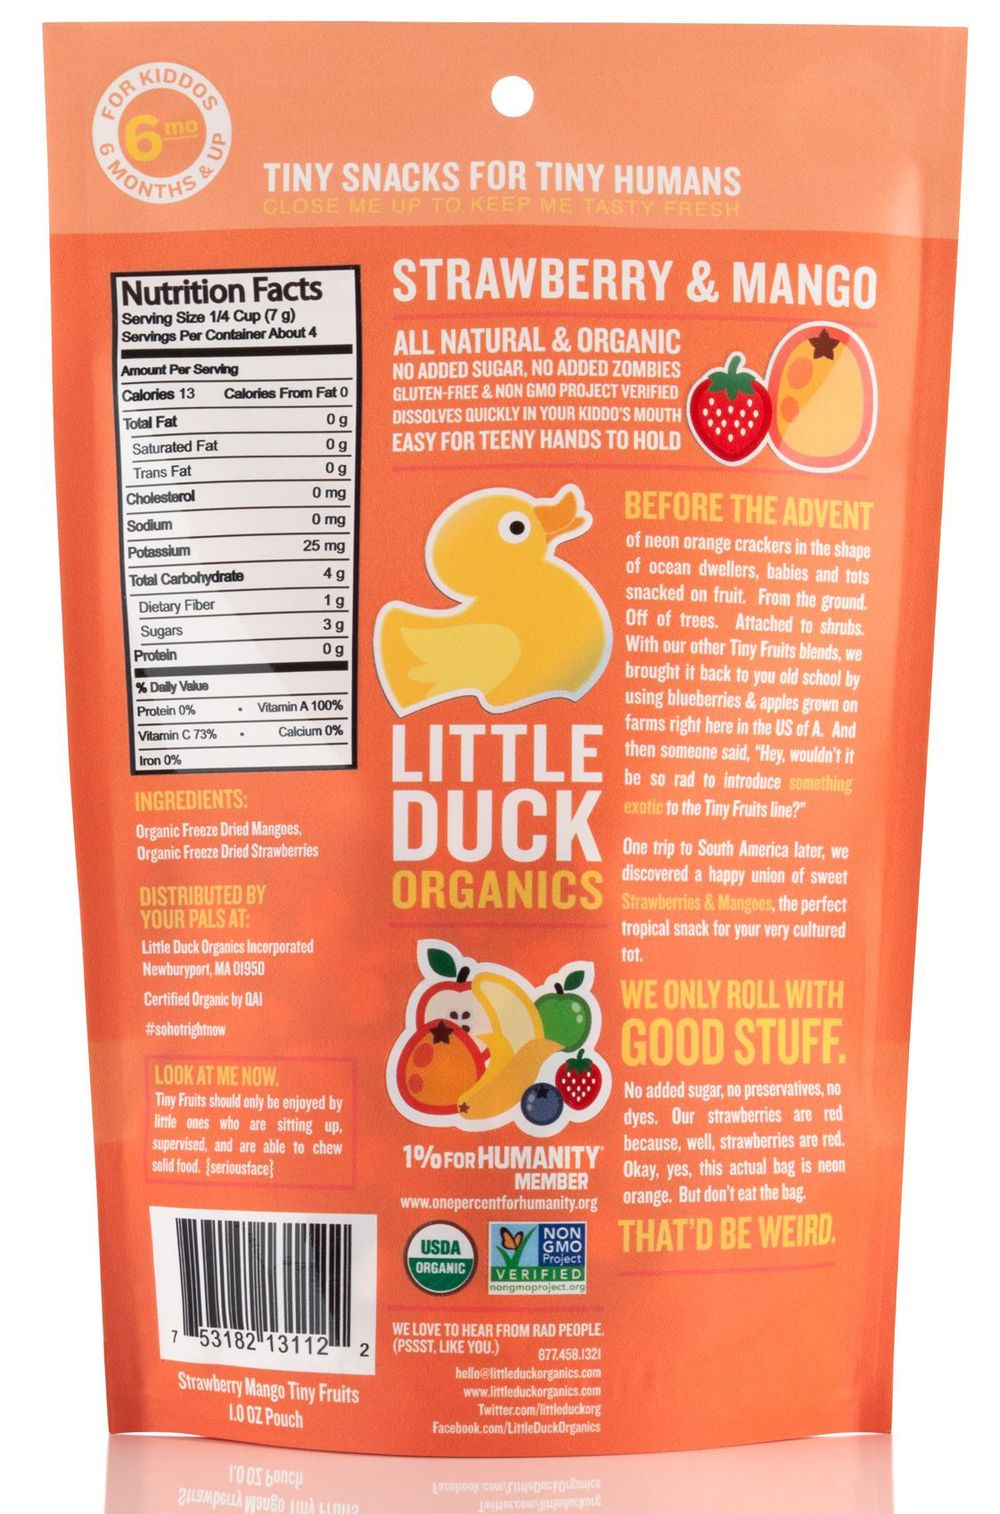 little-duck-organics-tiny-fruits-copywriting.jpeg